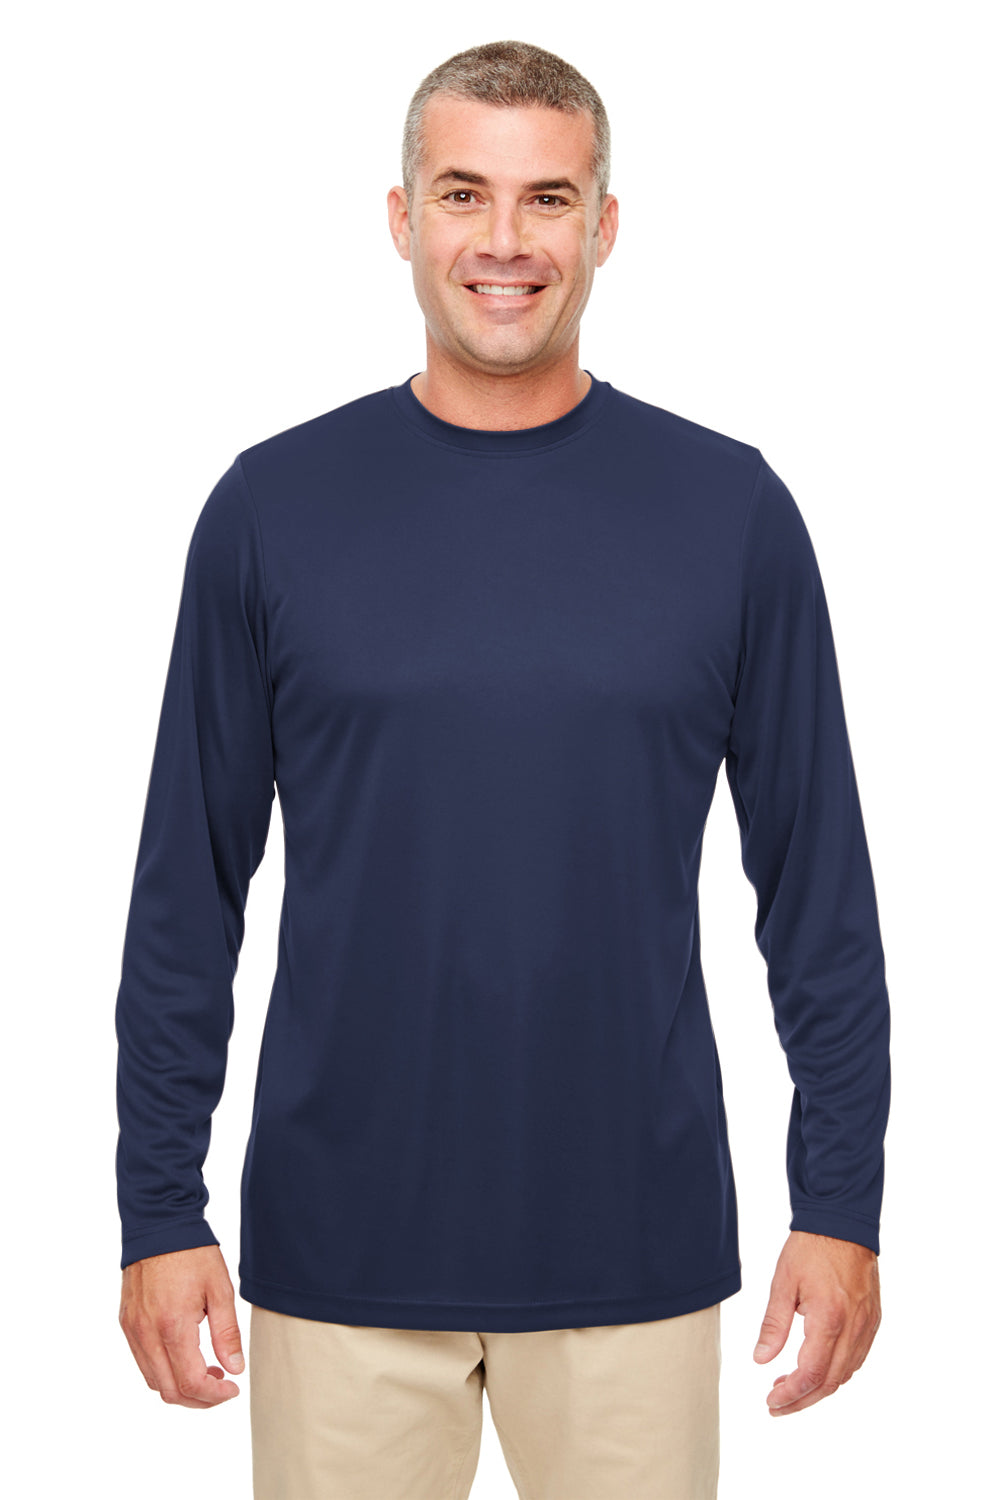 UltraClub 8622 Mens Cool & Dry Performance Moisture Wicking Long Sleeve Crewneck T-Shirt Navy Blue Front